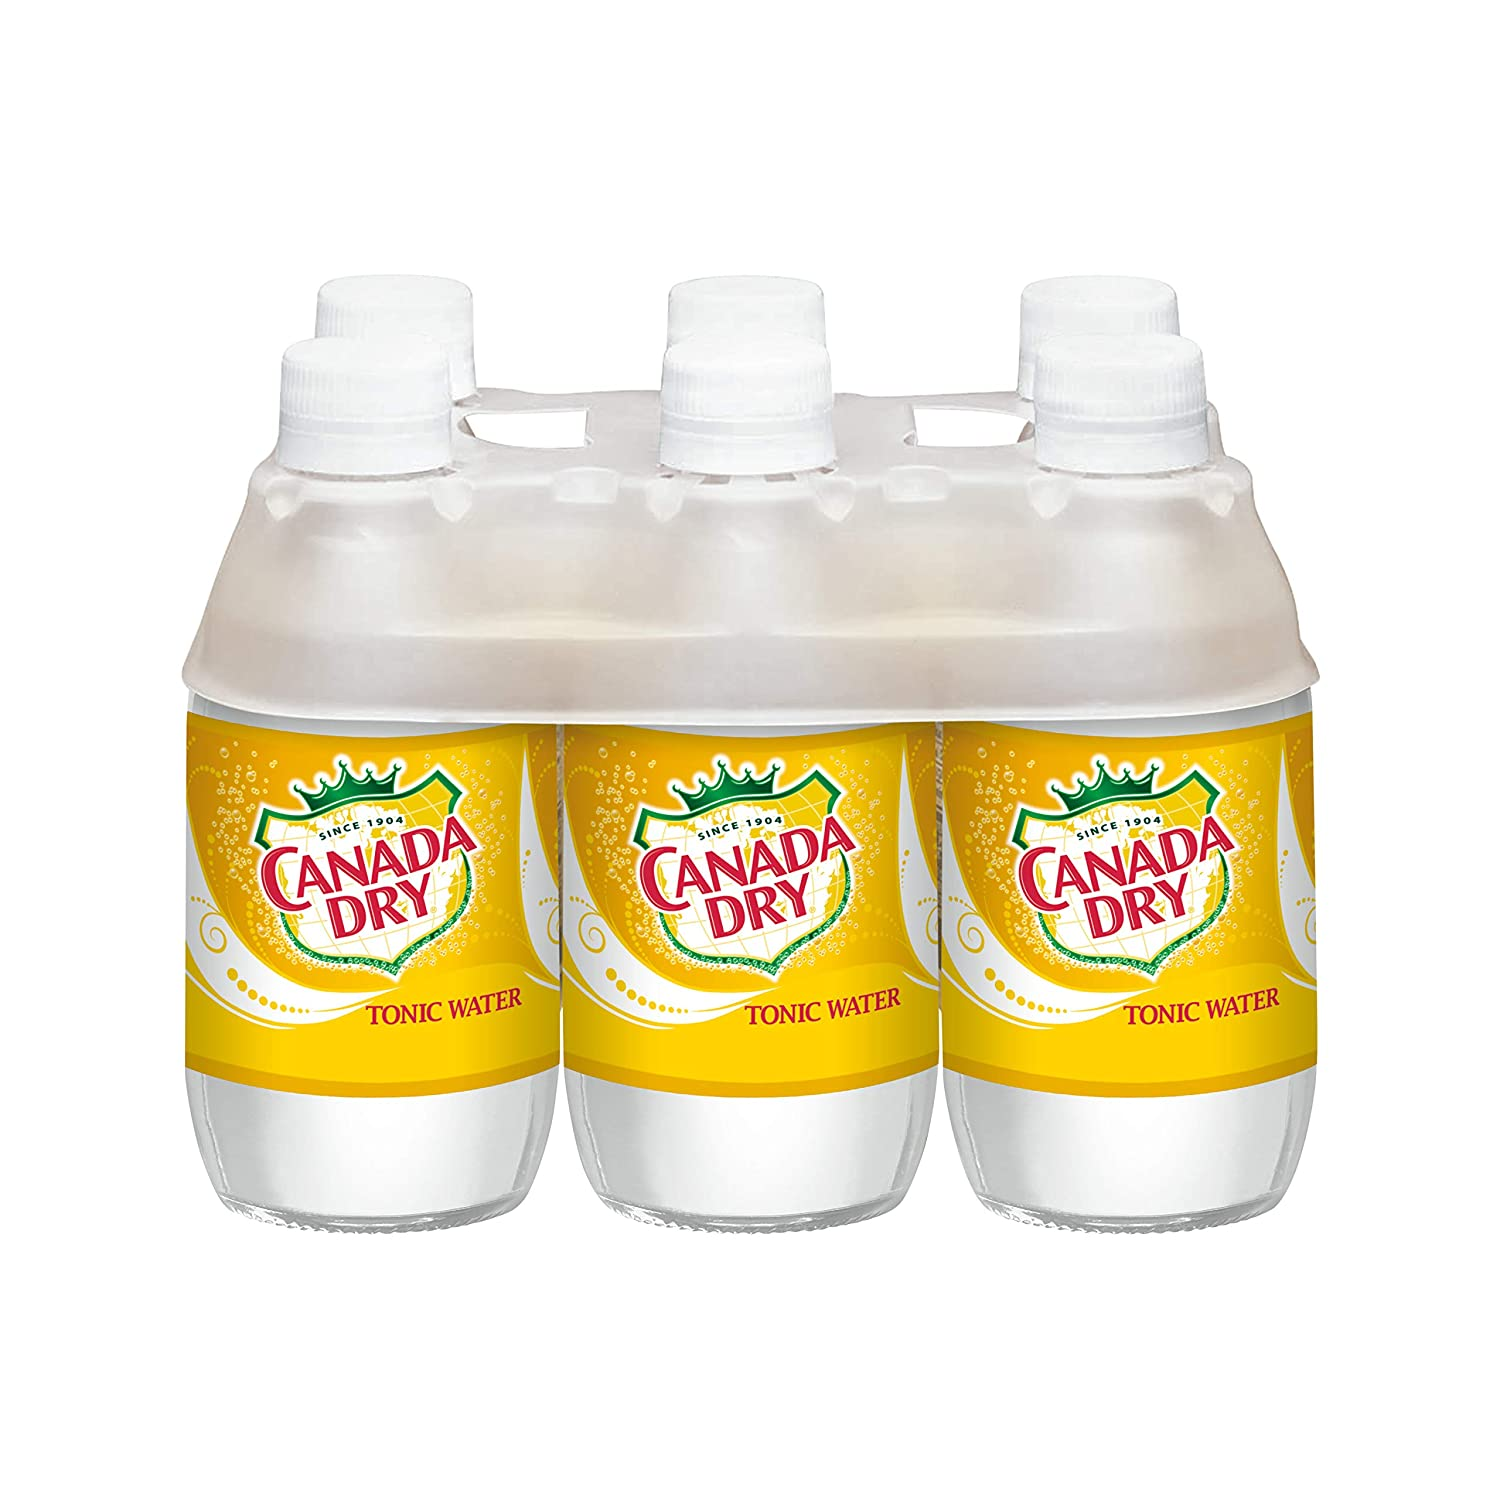 Canada Dry Tonic Water, 10 Fl Oz (pack of 6) 817ld2BXqGIL